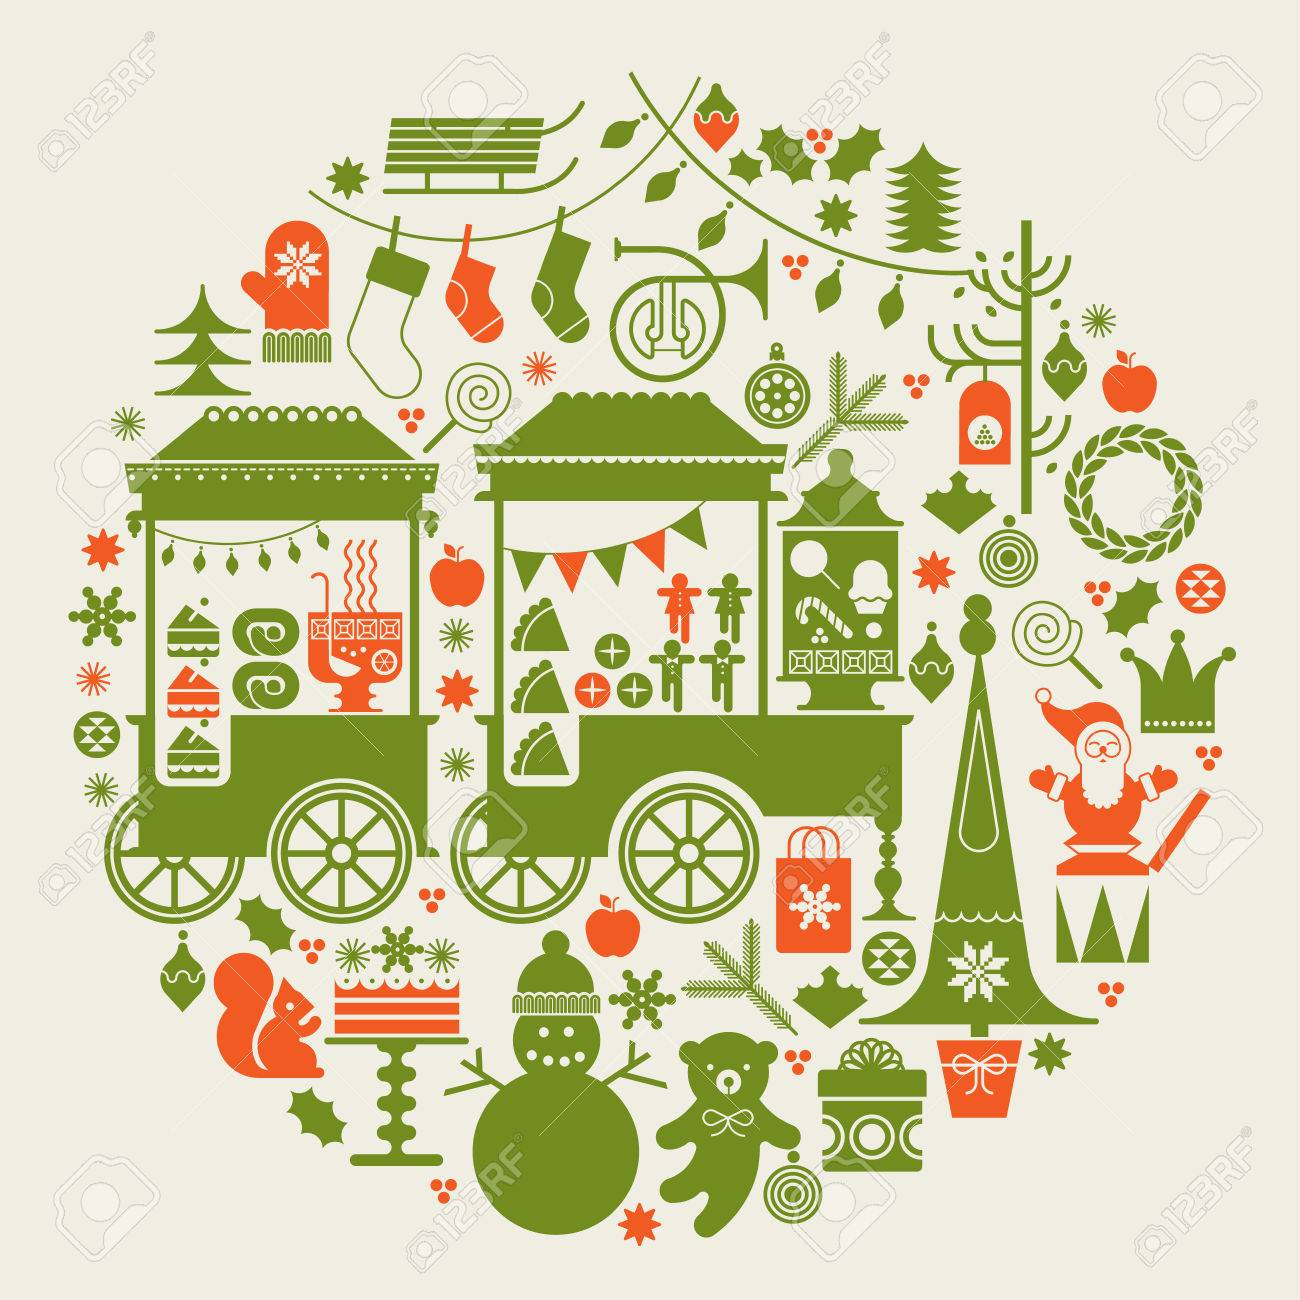 Round composition with Christmas market, street food trolleys, Christmas trees and holiday season symbols. - 45719885